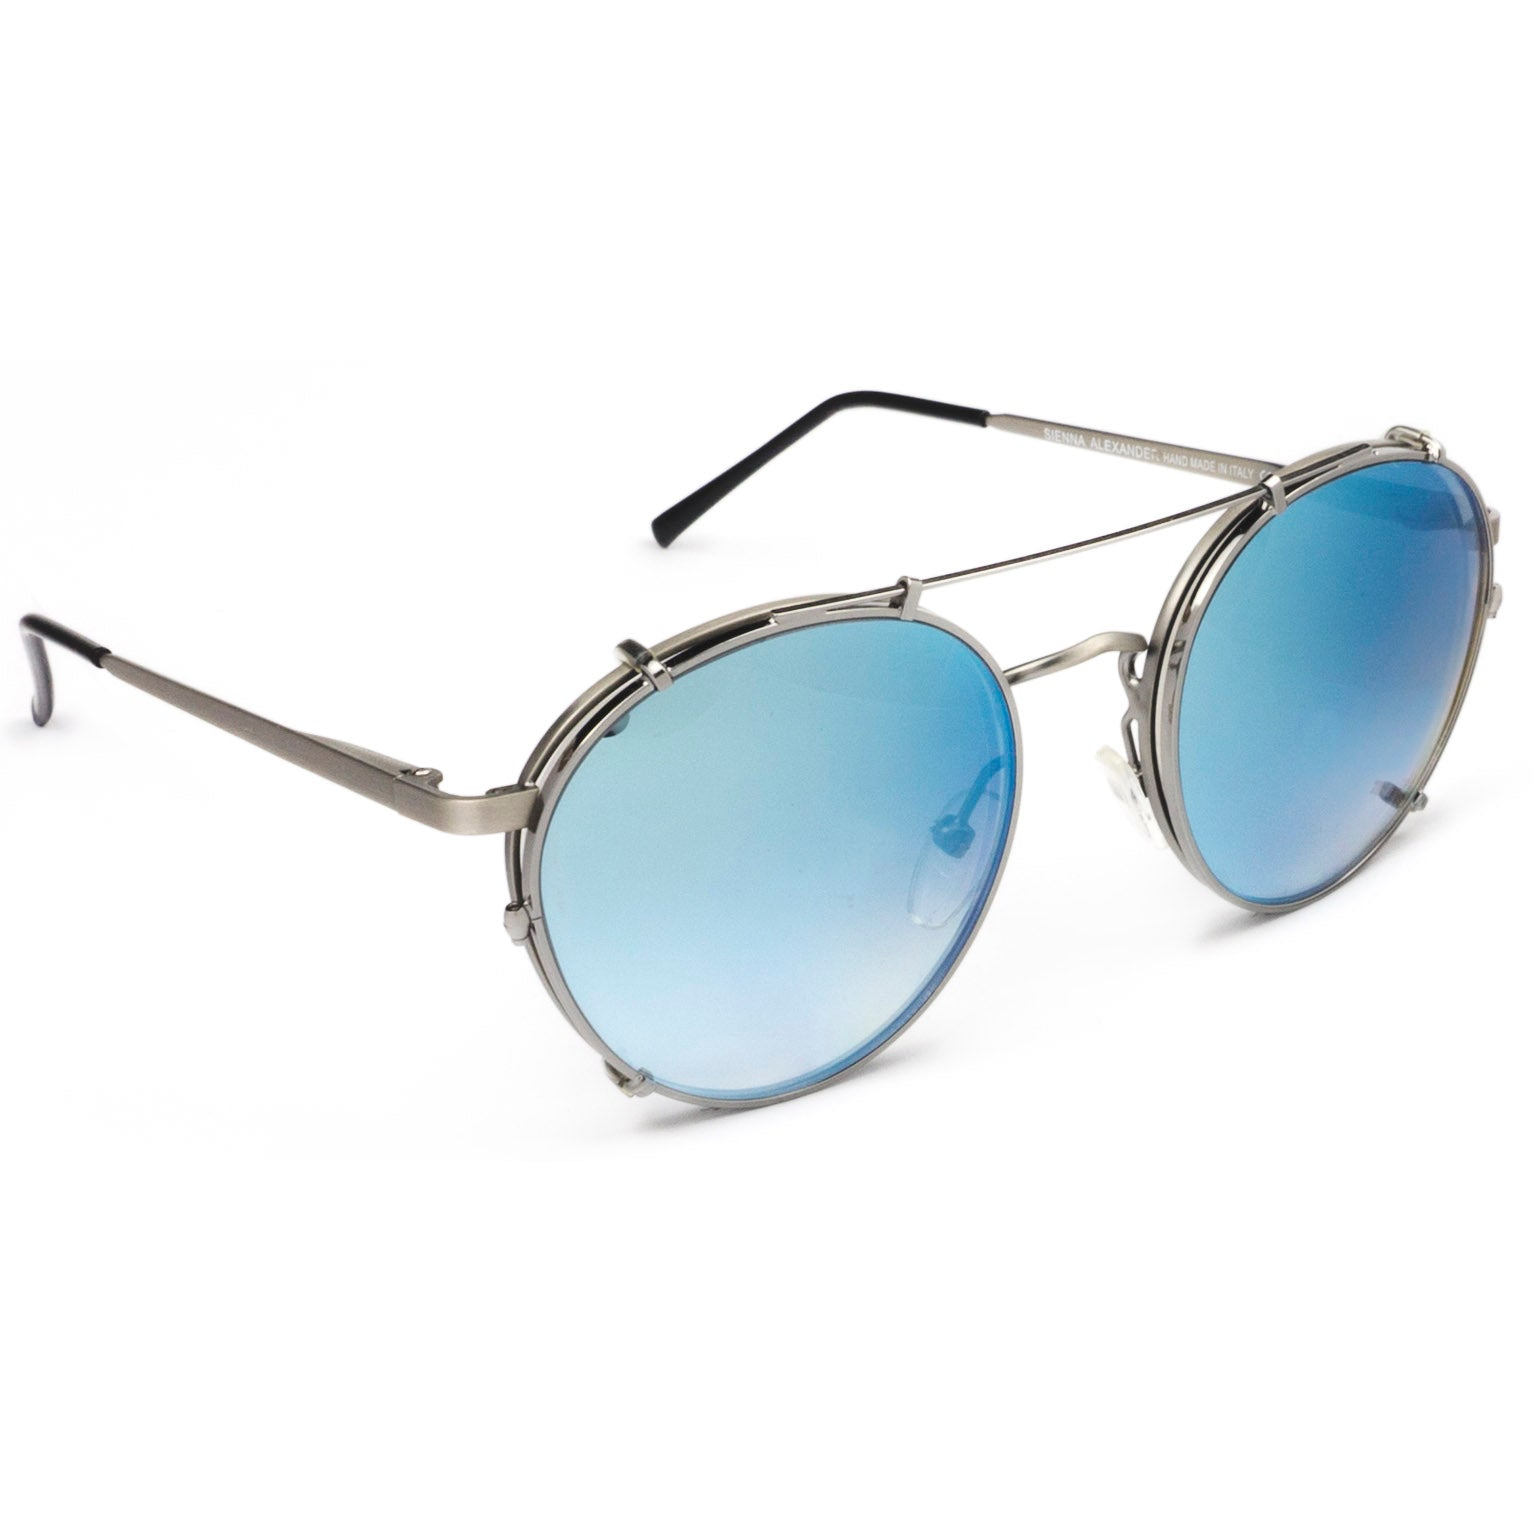 036944b2b4a24 Light Blue aviator style sunglasses with Clip On for women